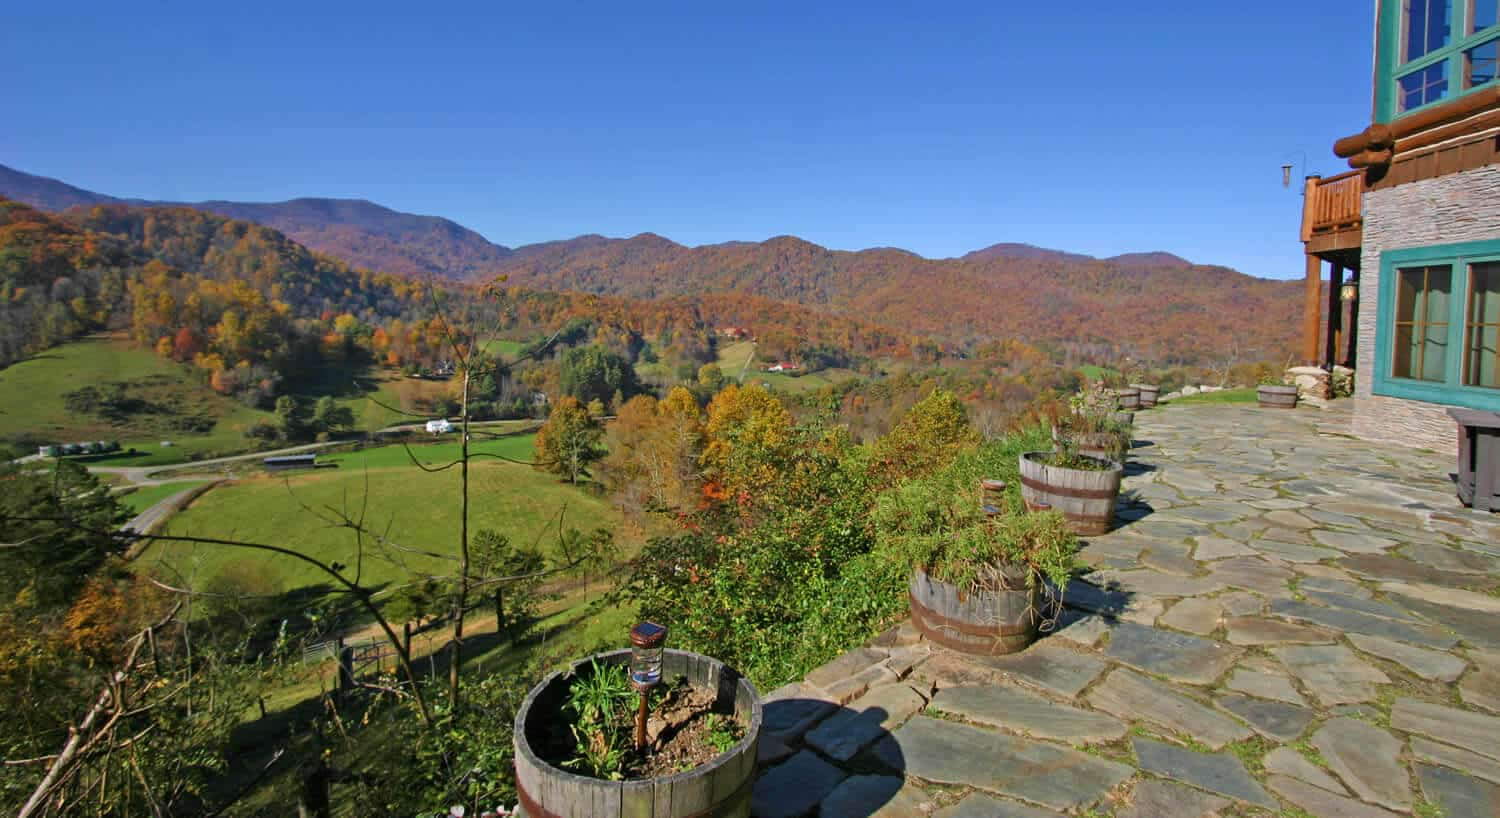 Stone patio overlooks a green valley and extended hills covered in fall foliage.